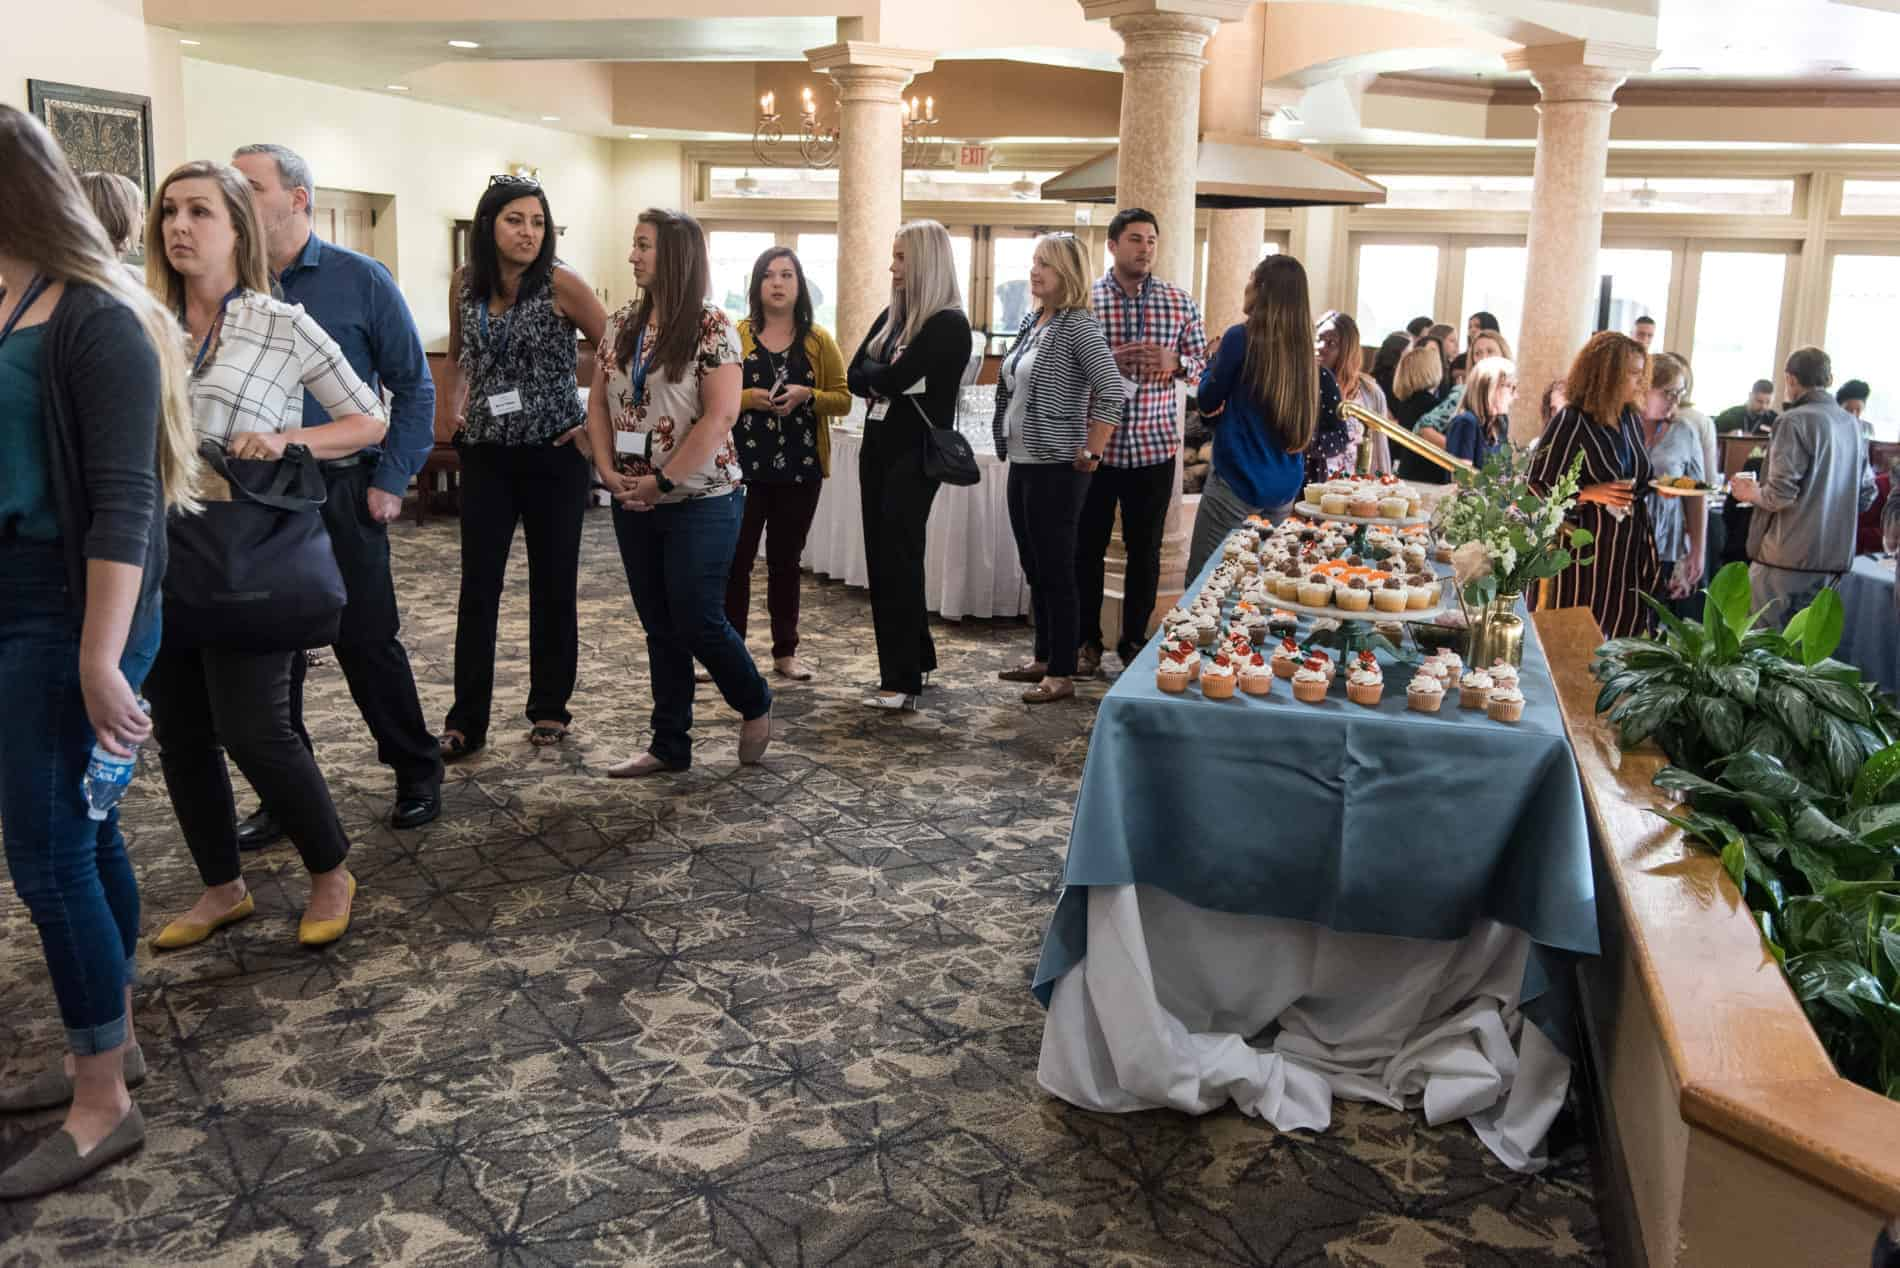 They had amazing food at The Wedding Education Conference Lunch.